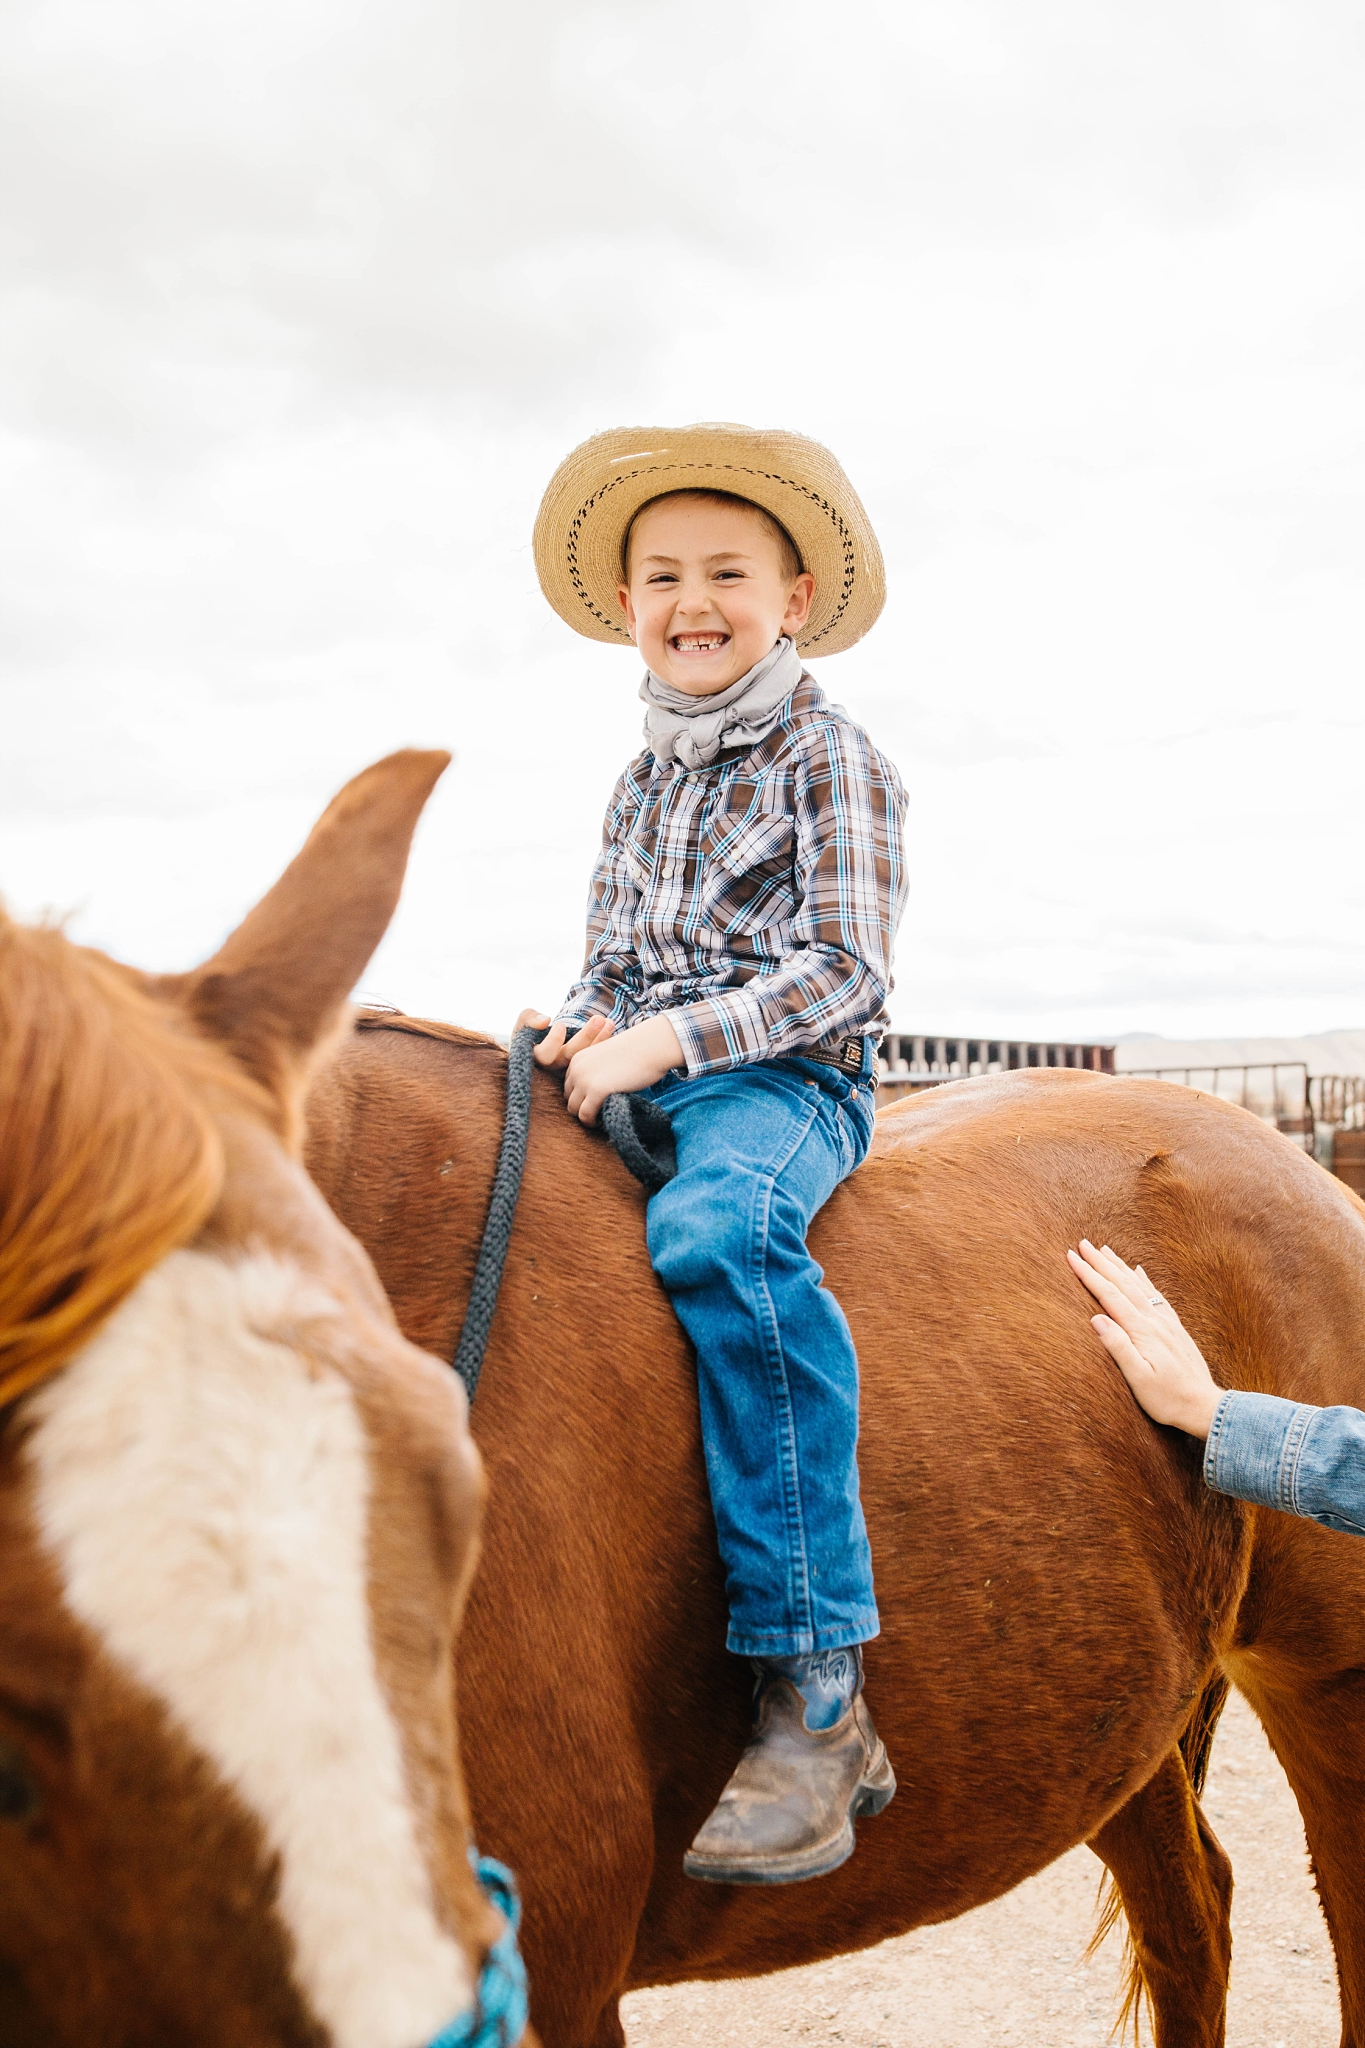 Lister-95_Lizzie-B-Imagery-Utah-Family-Photographer-Lifestyle-Photography-Salt-Lake-City-Park-City-Utah-County-Farm-Family-Session.jpg